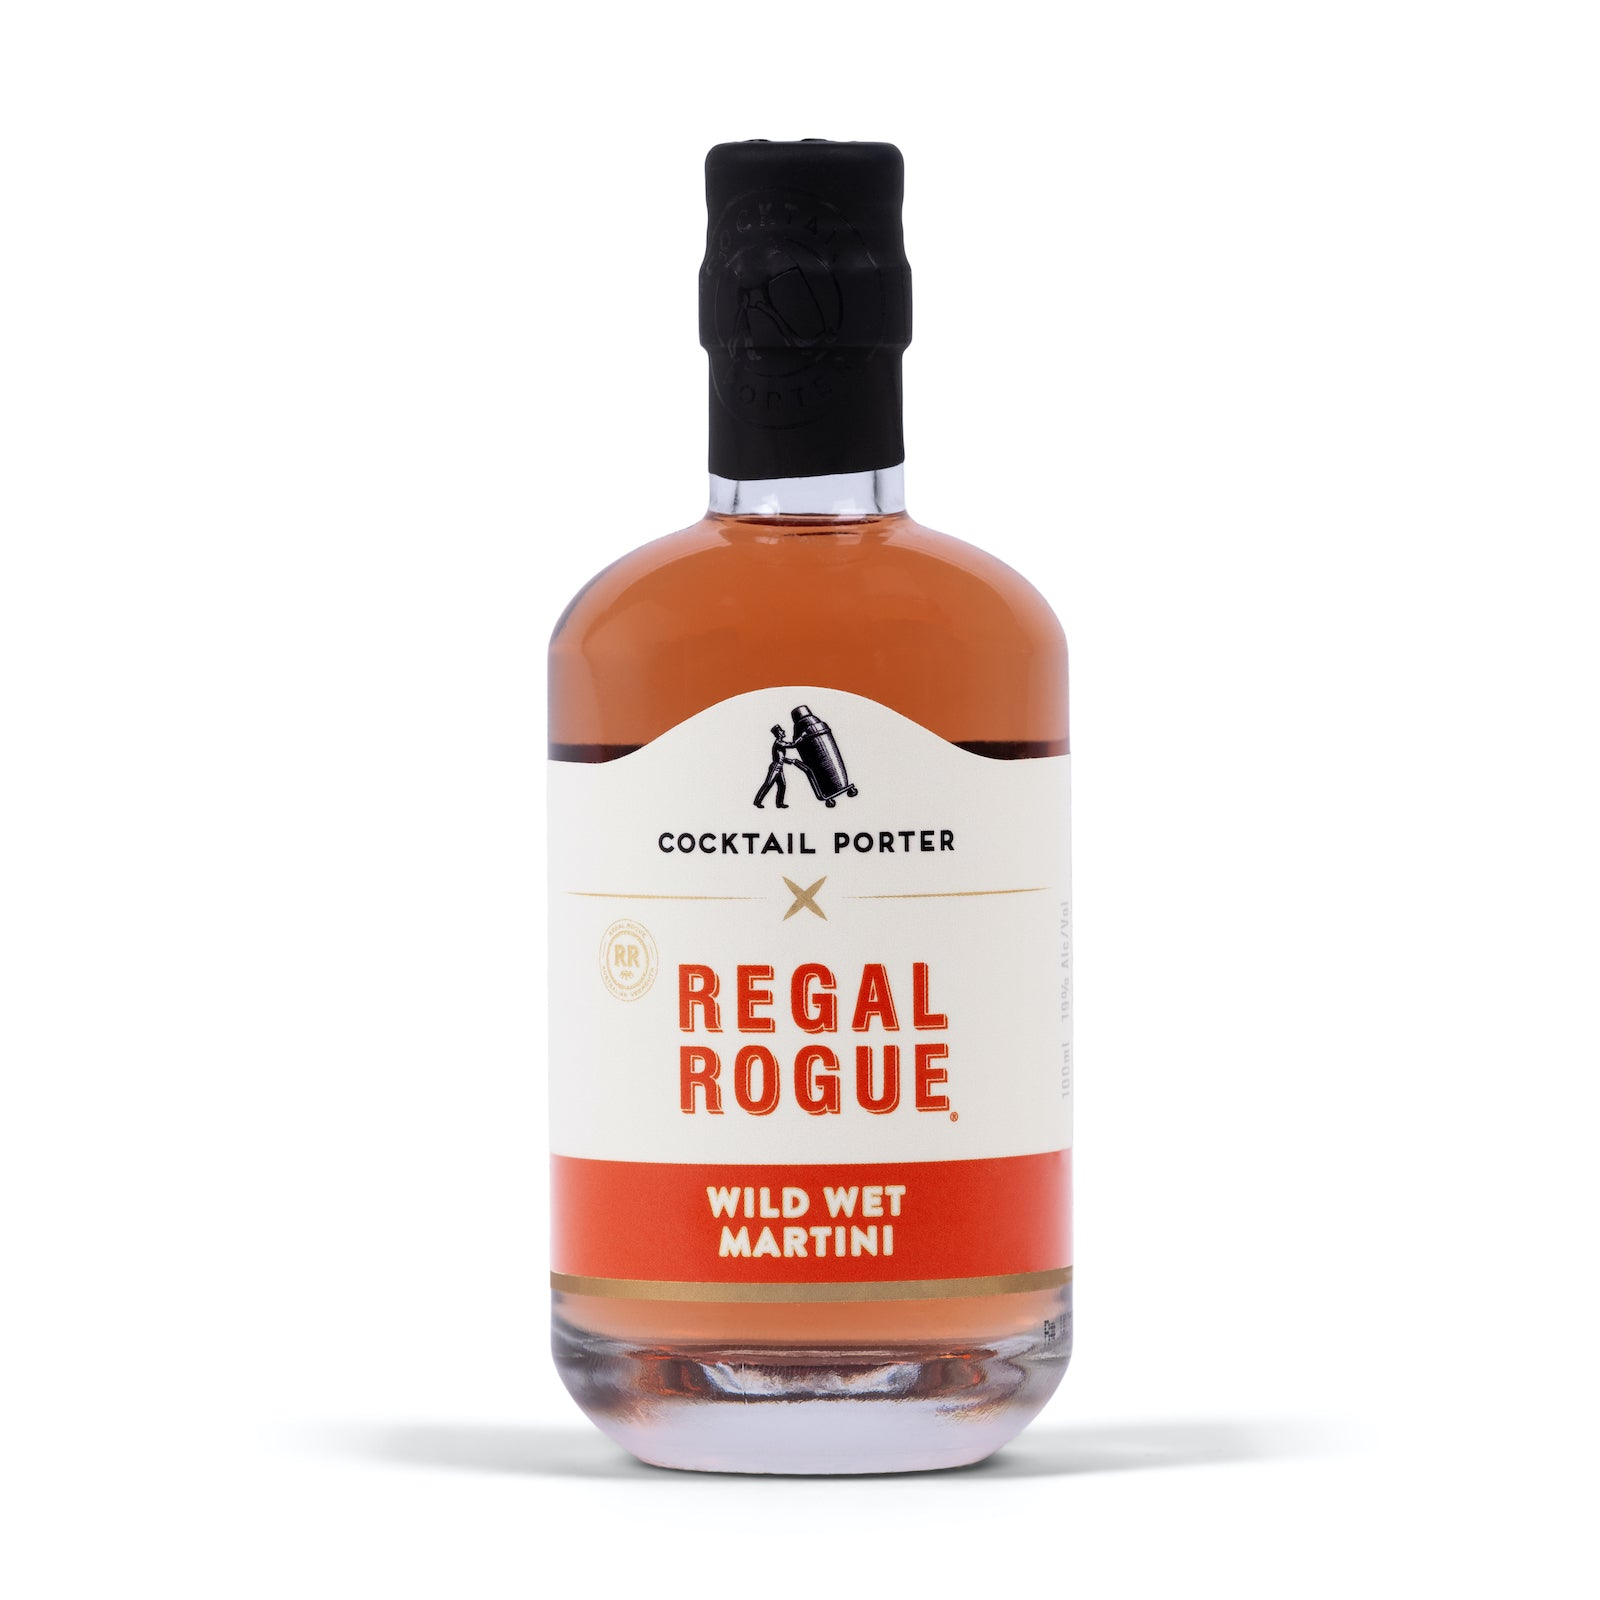 Regal Rogue Wild Wet Martini Bottled Cocktail